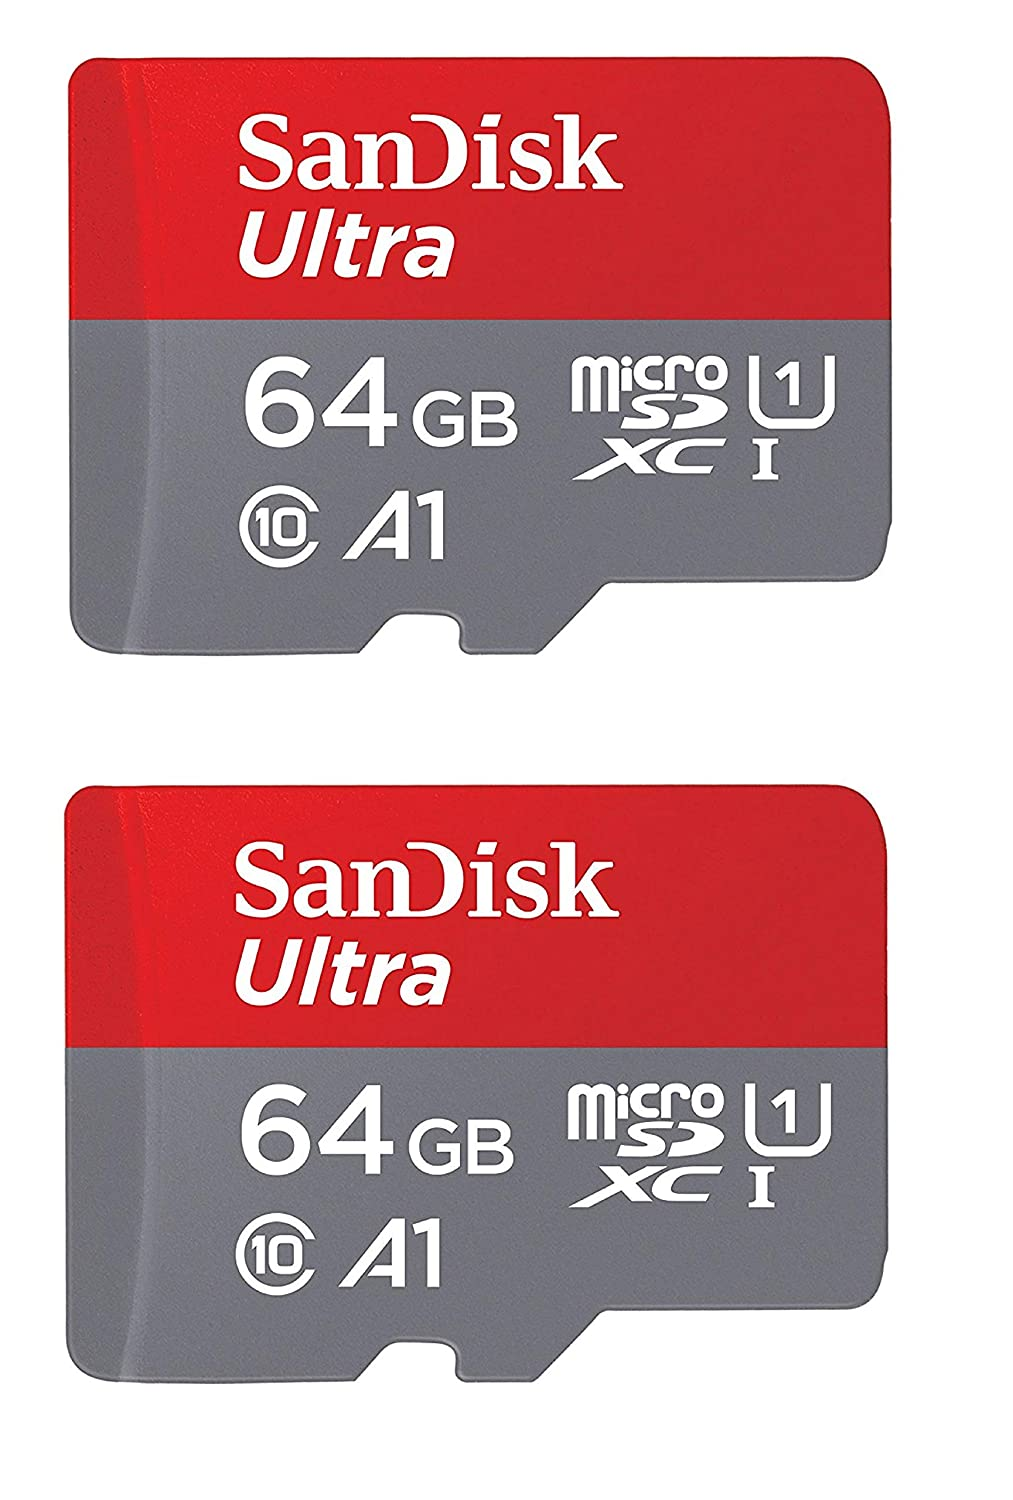 SanDisk Ultra Plus 64GB microSDXC UHS-I Card with SD Adapter, Grey/Red, Full HD up to 100 MB/S For Android Phone, Tables and Camera (2 Pack of 64 GB ...